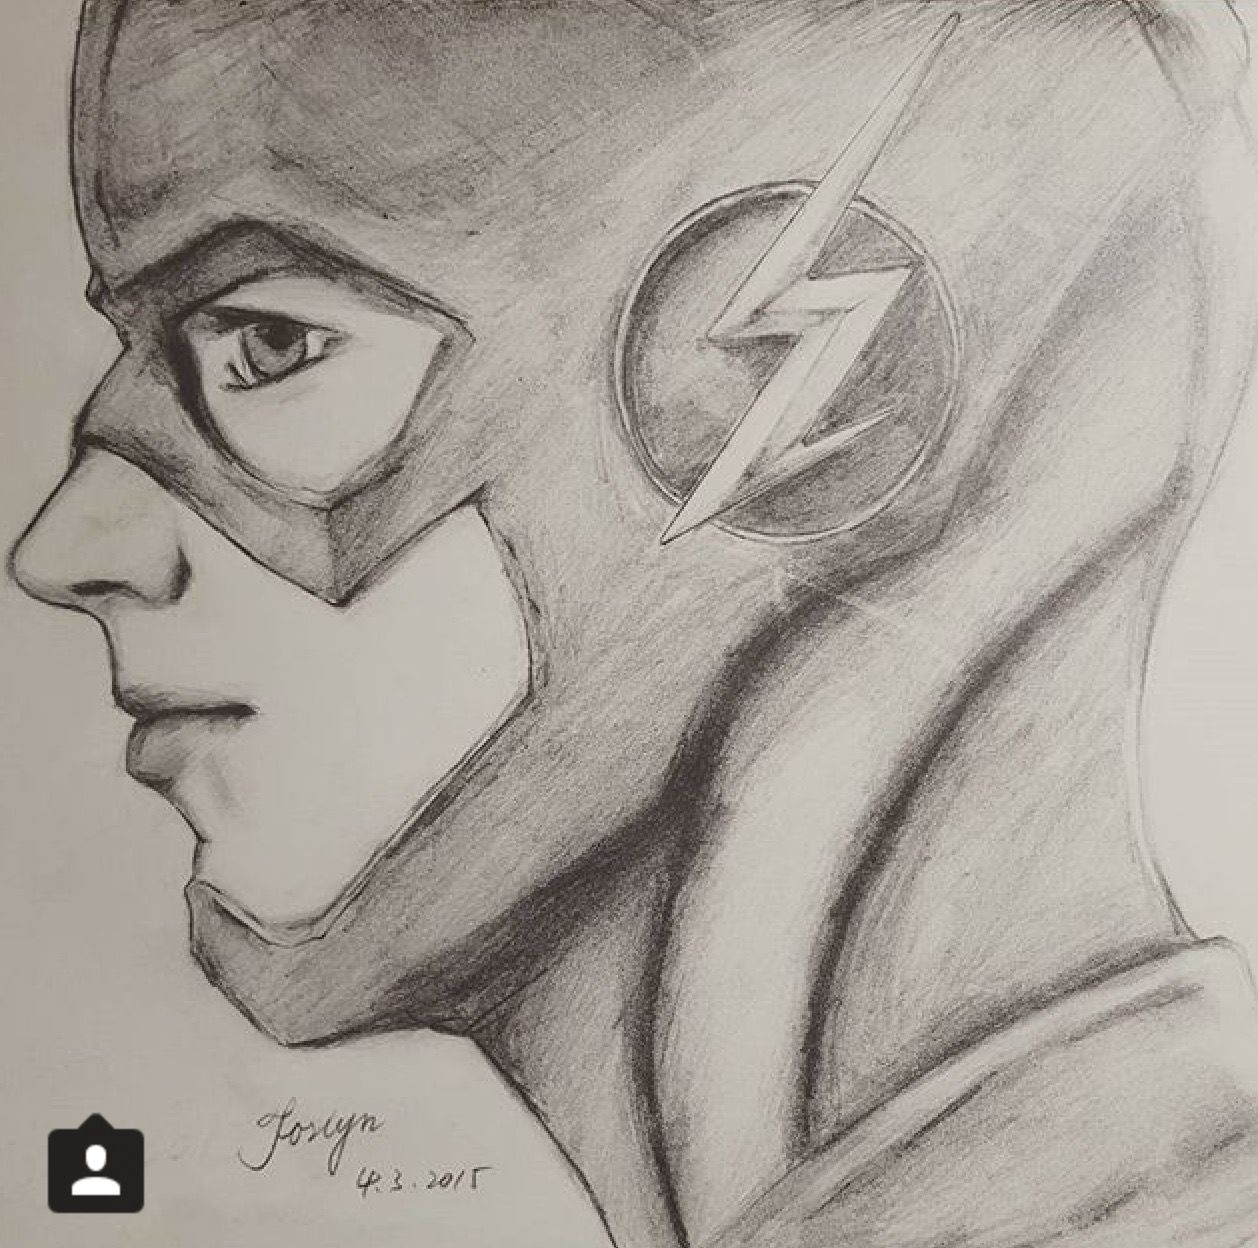 Barry Allen A K A The Flash Credit To Whoever Drew This It S